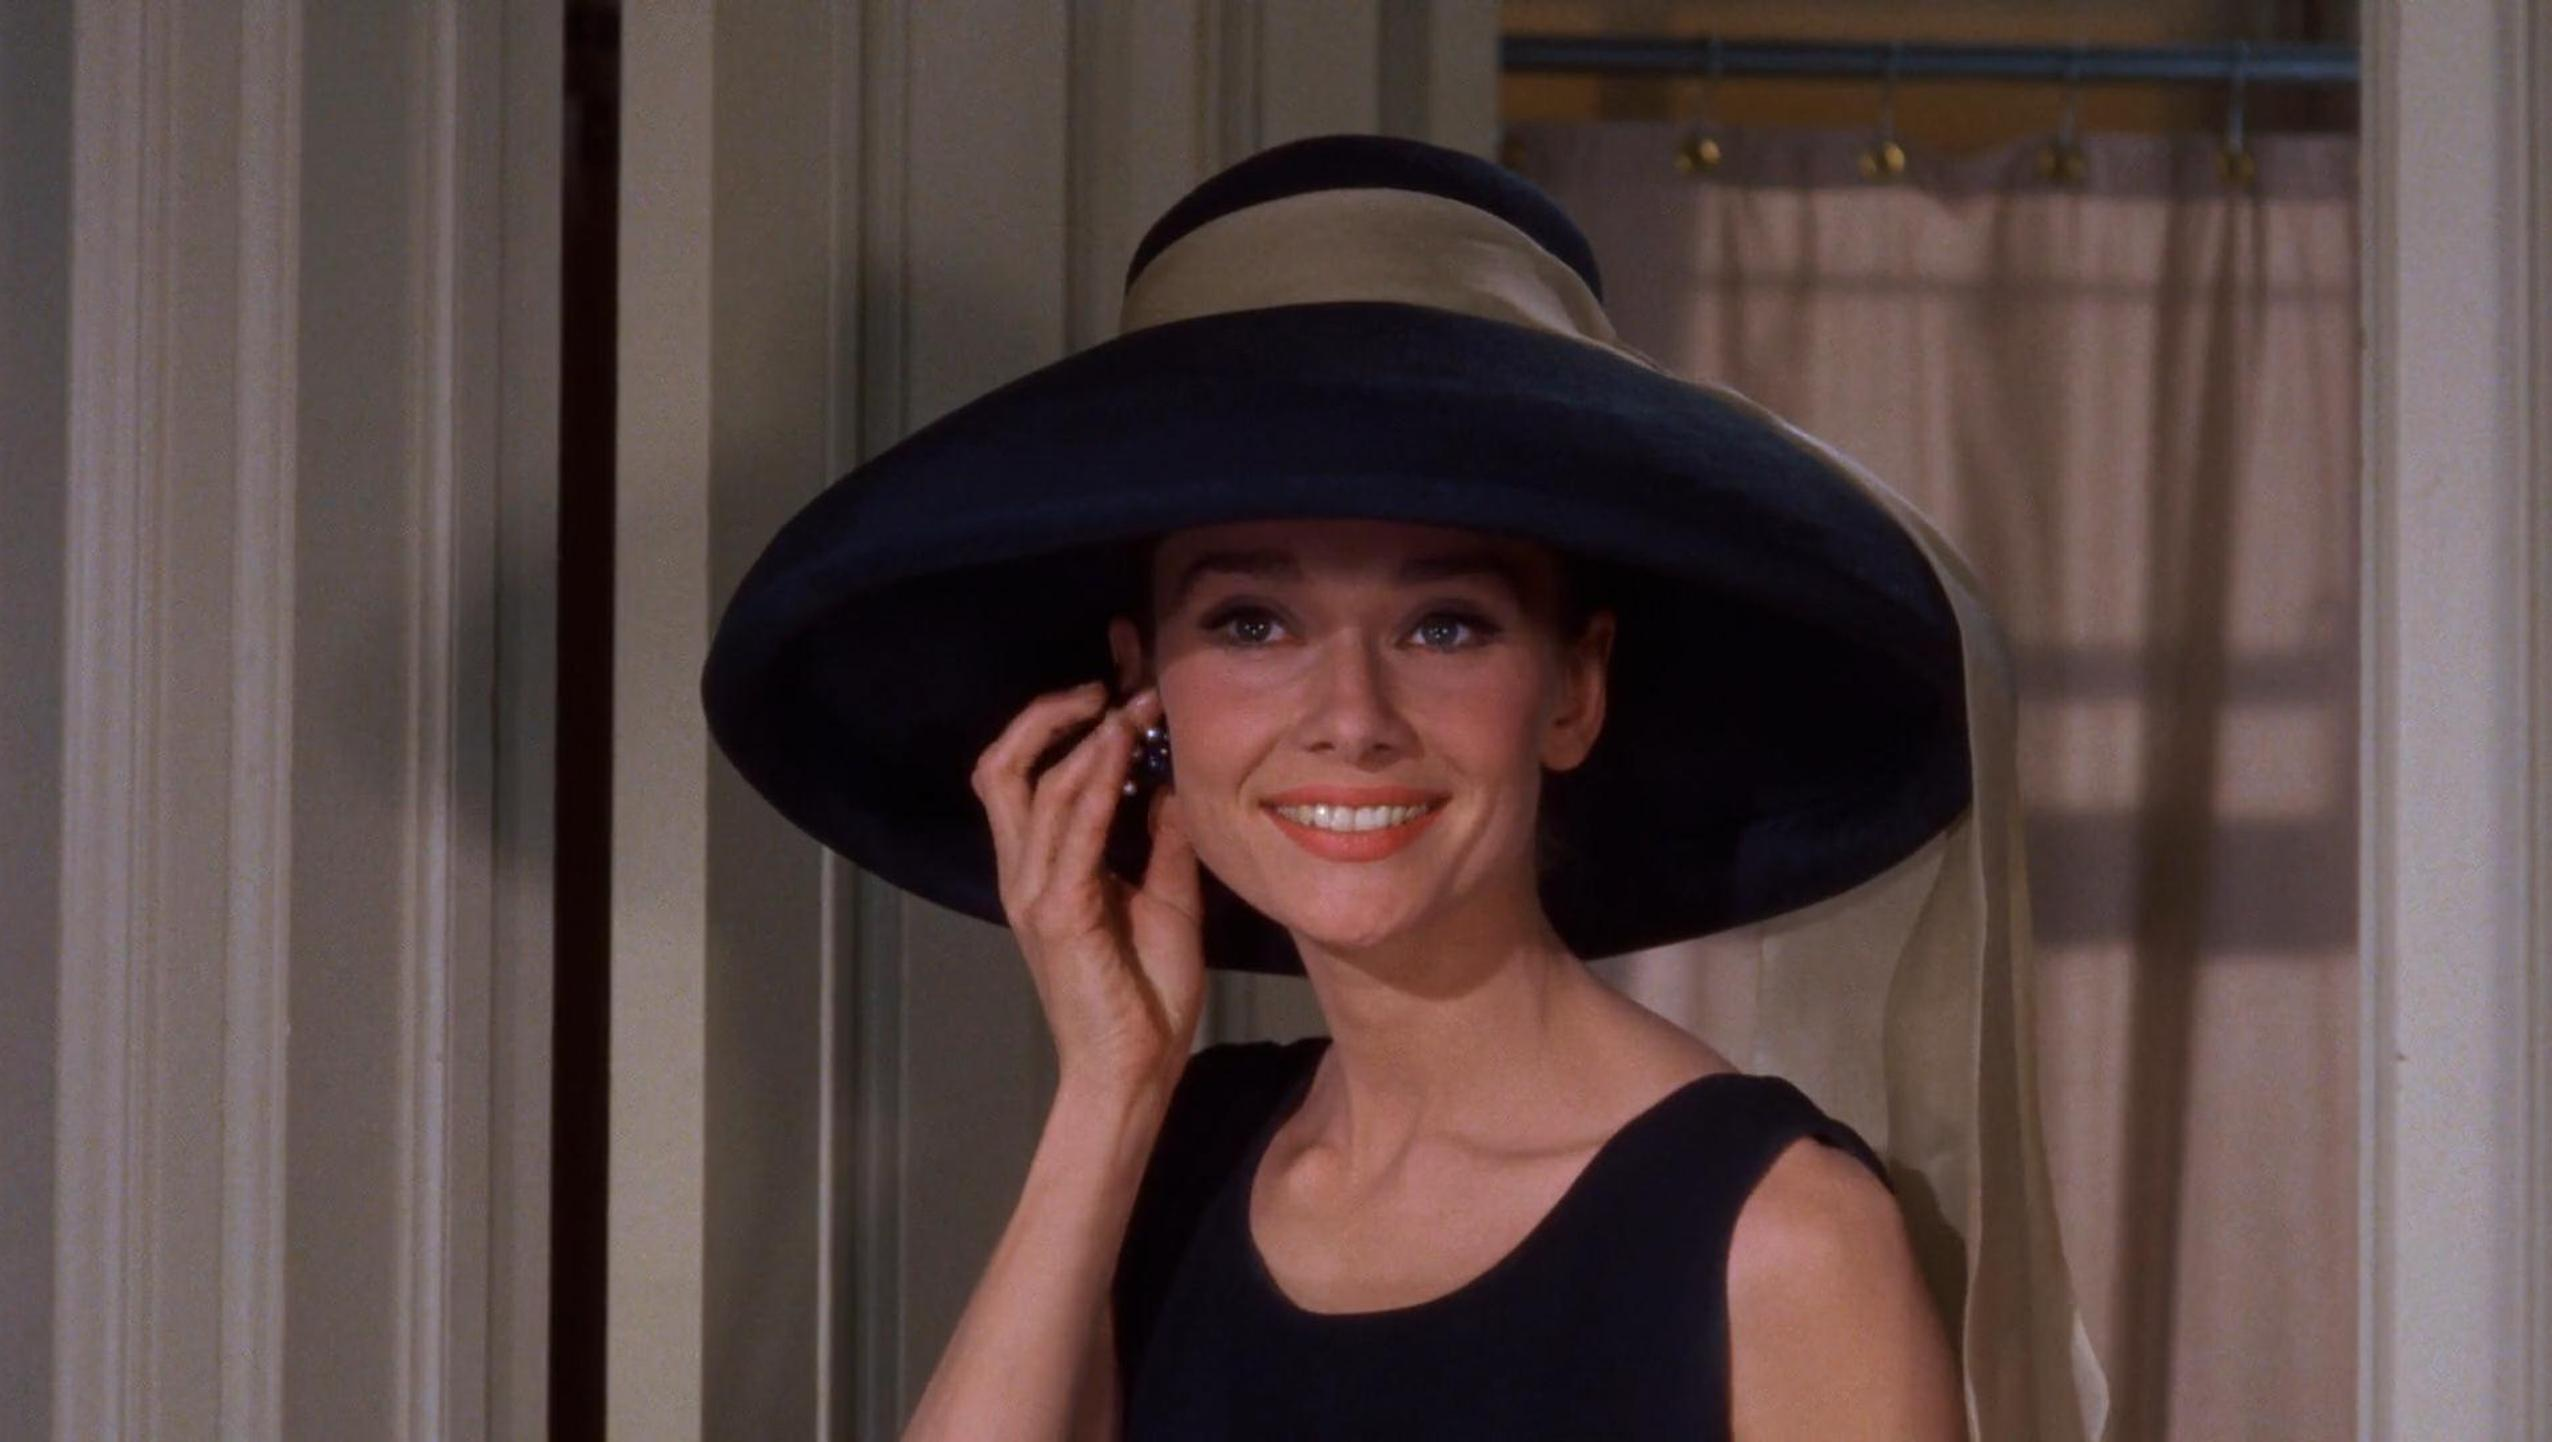 10. Breakfast at Tiffany's (1961)